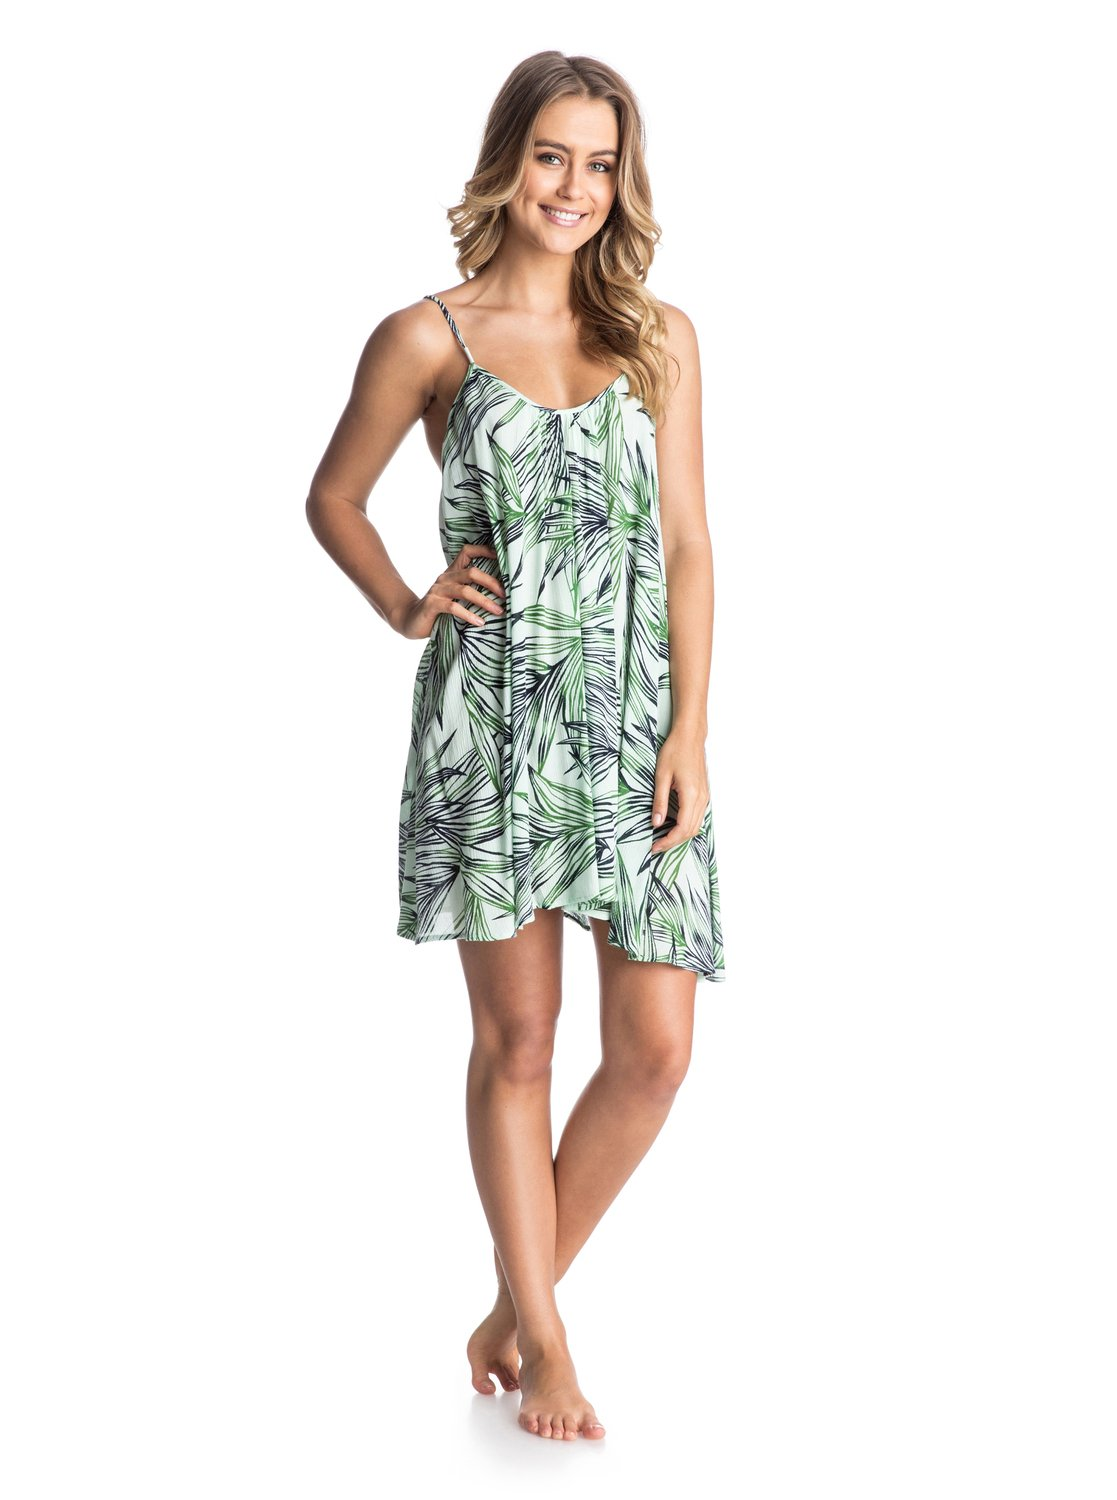 Sweet Vida Printed Dress от Roxy RU